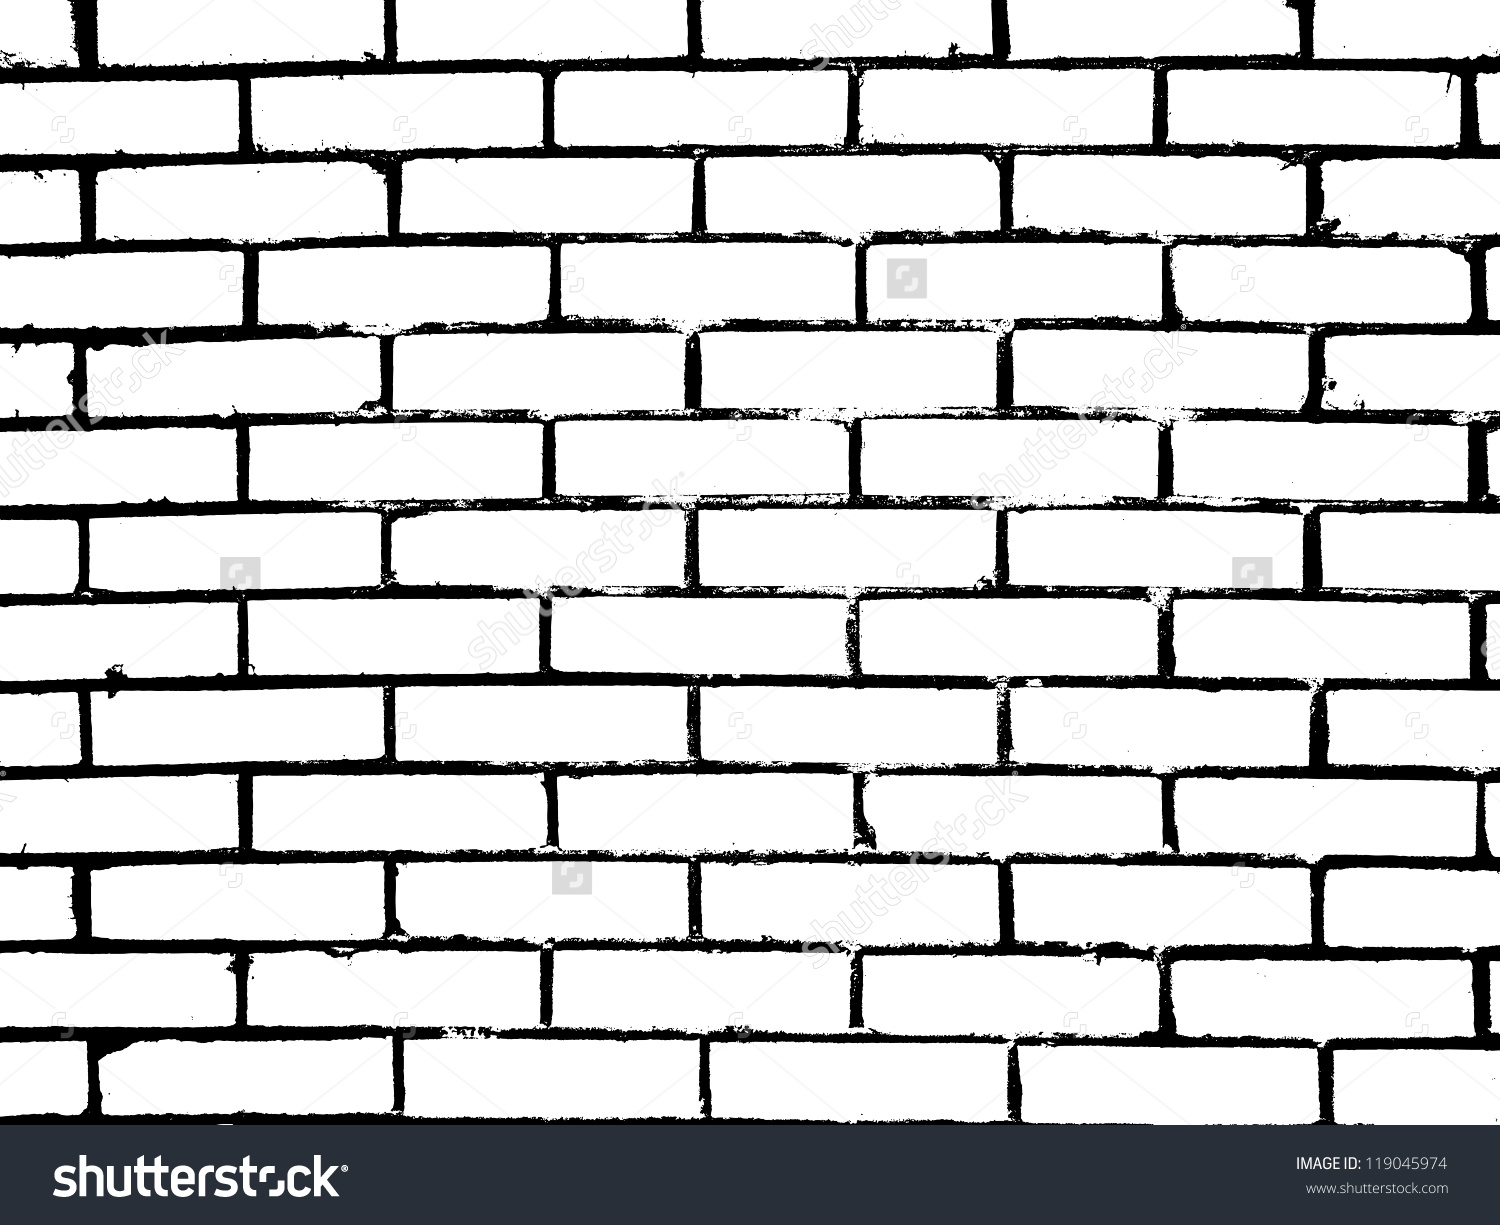 brick wall clipart black and white small kitchen Living | Clipart ...